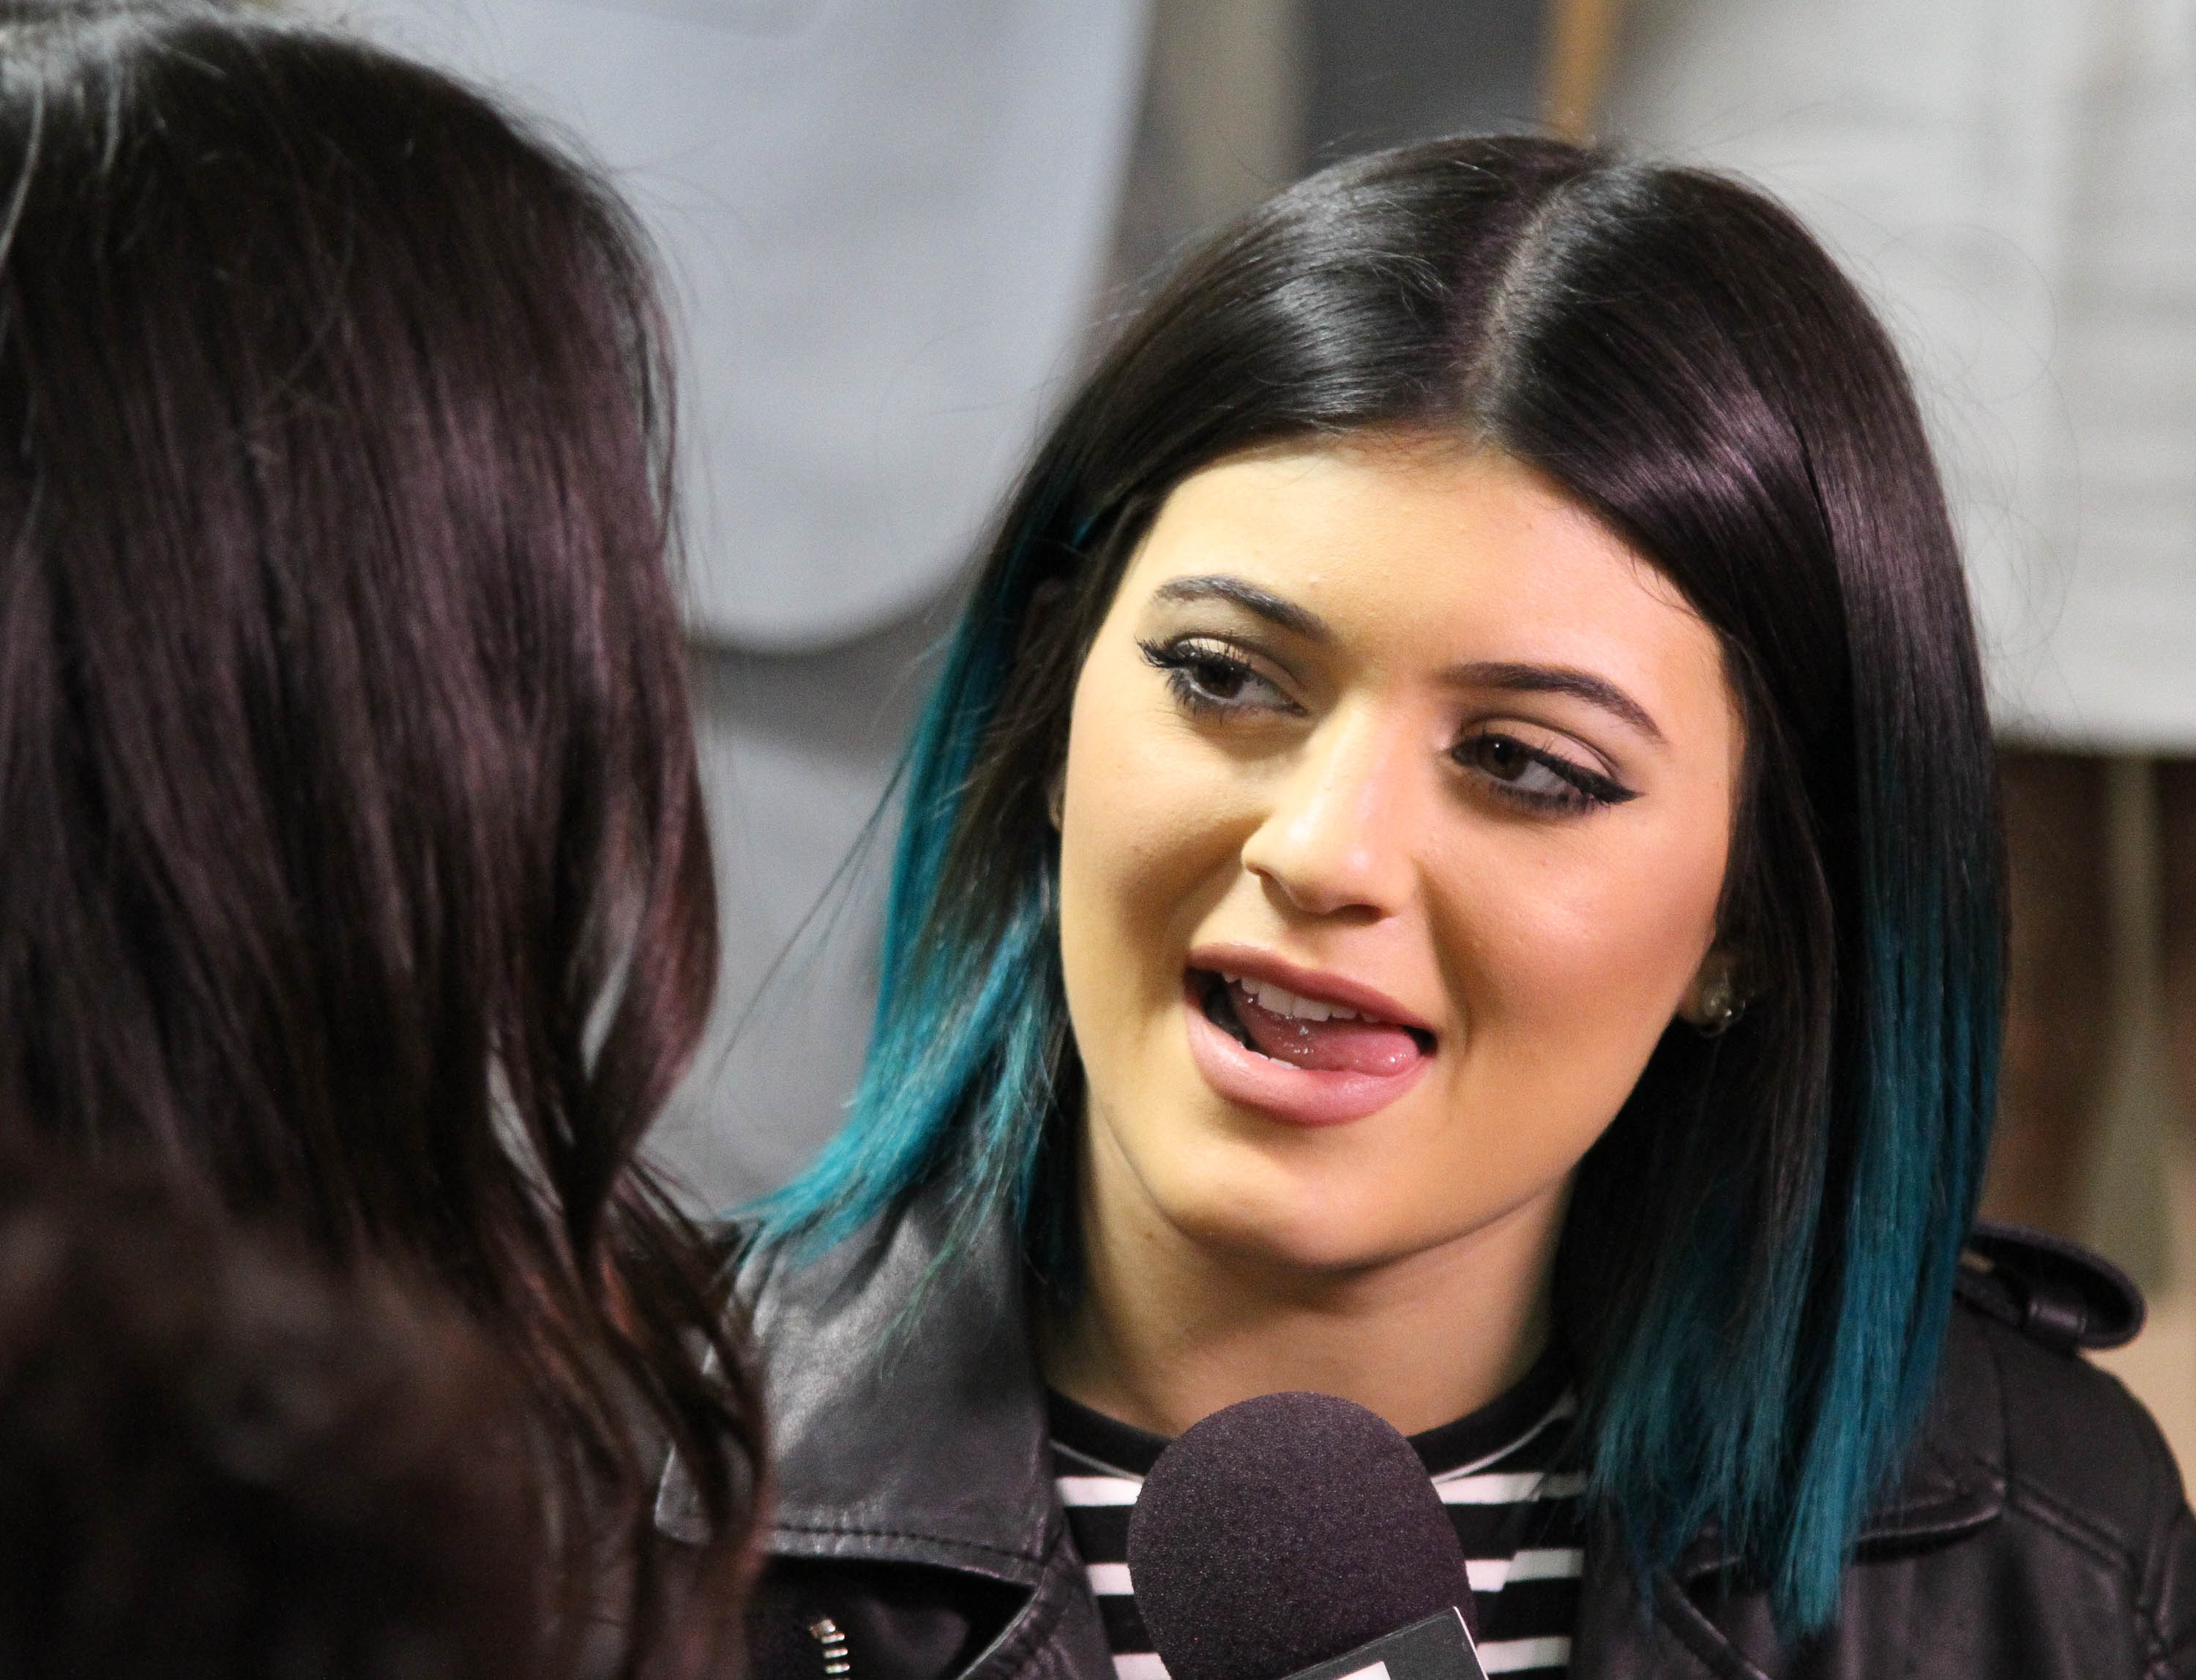 Can You Get Lip Fillers At 17? As Long As Kylie Jenner's Parent